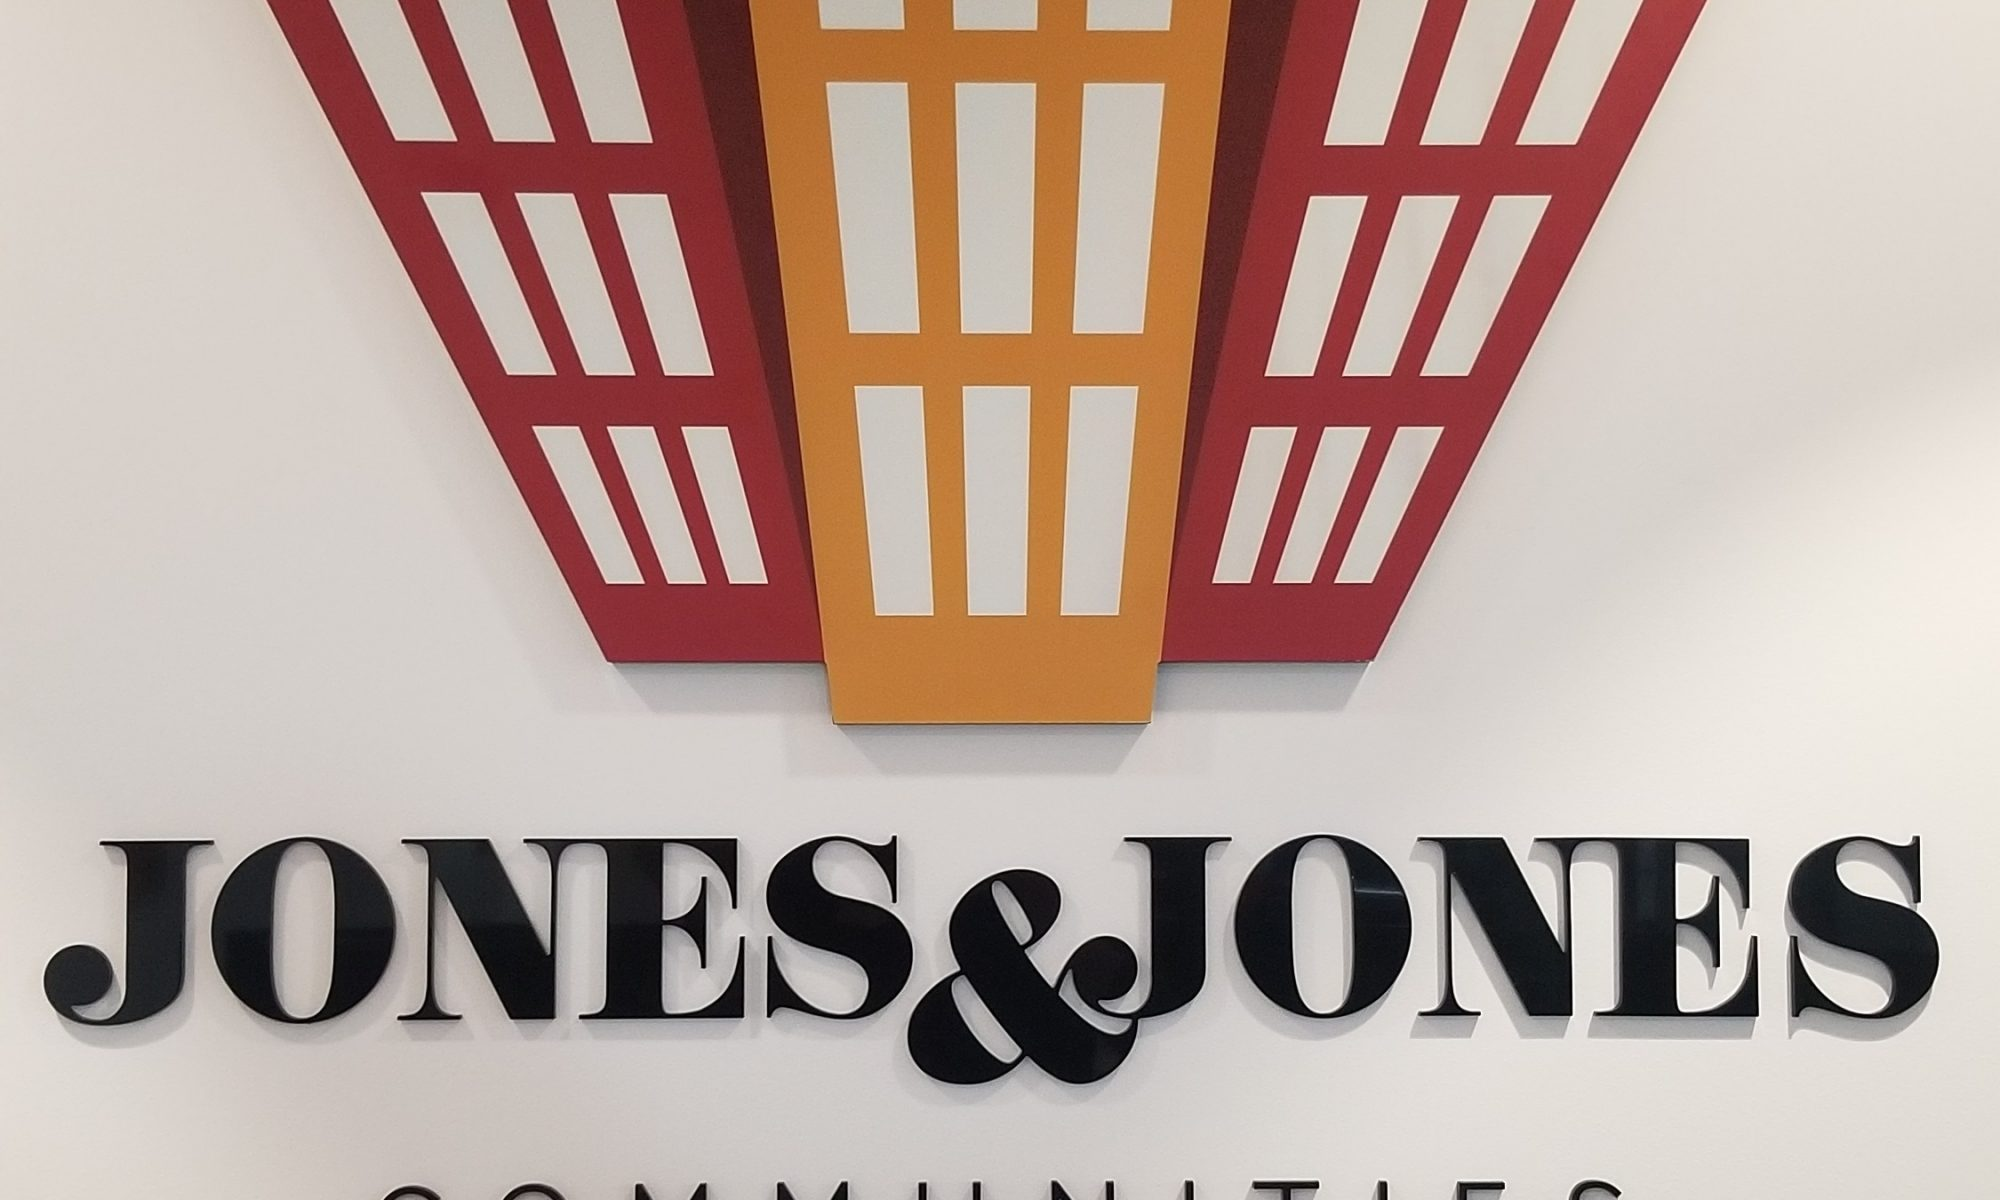 More office signage for the Jones and Jones, the Woodland Hills property management company, this time a bullpen acrylic lobby sign.